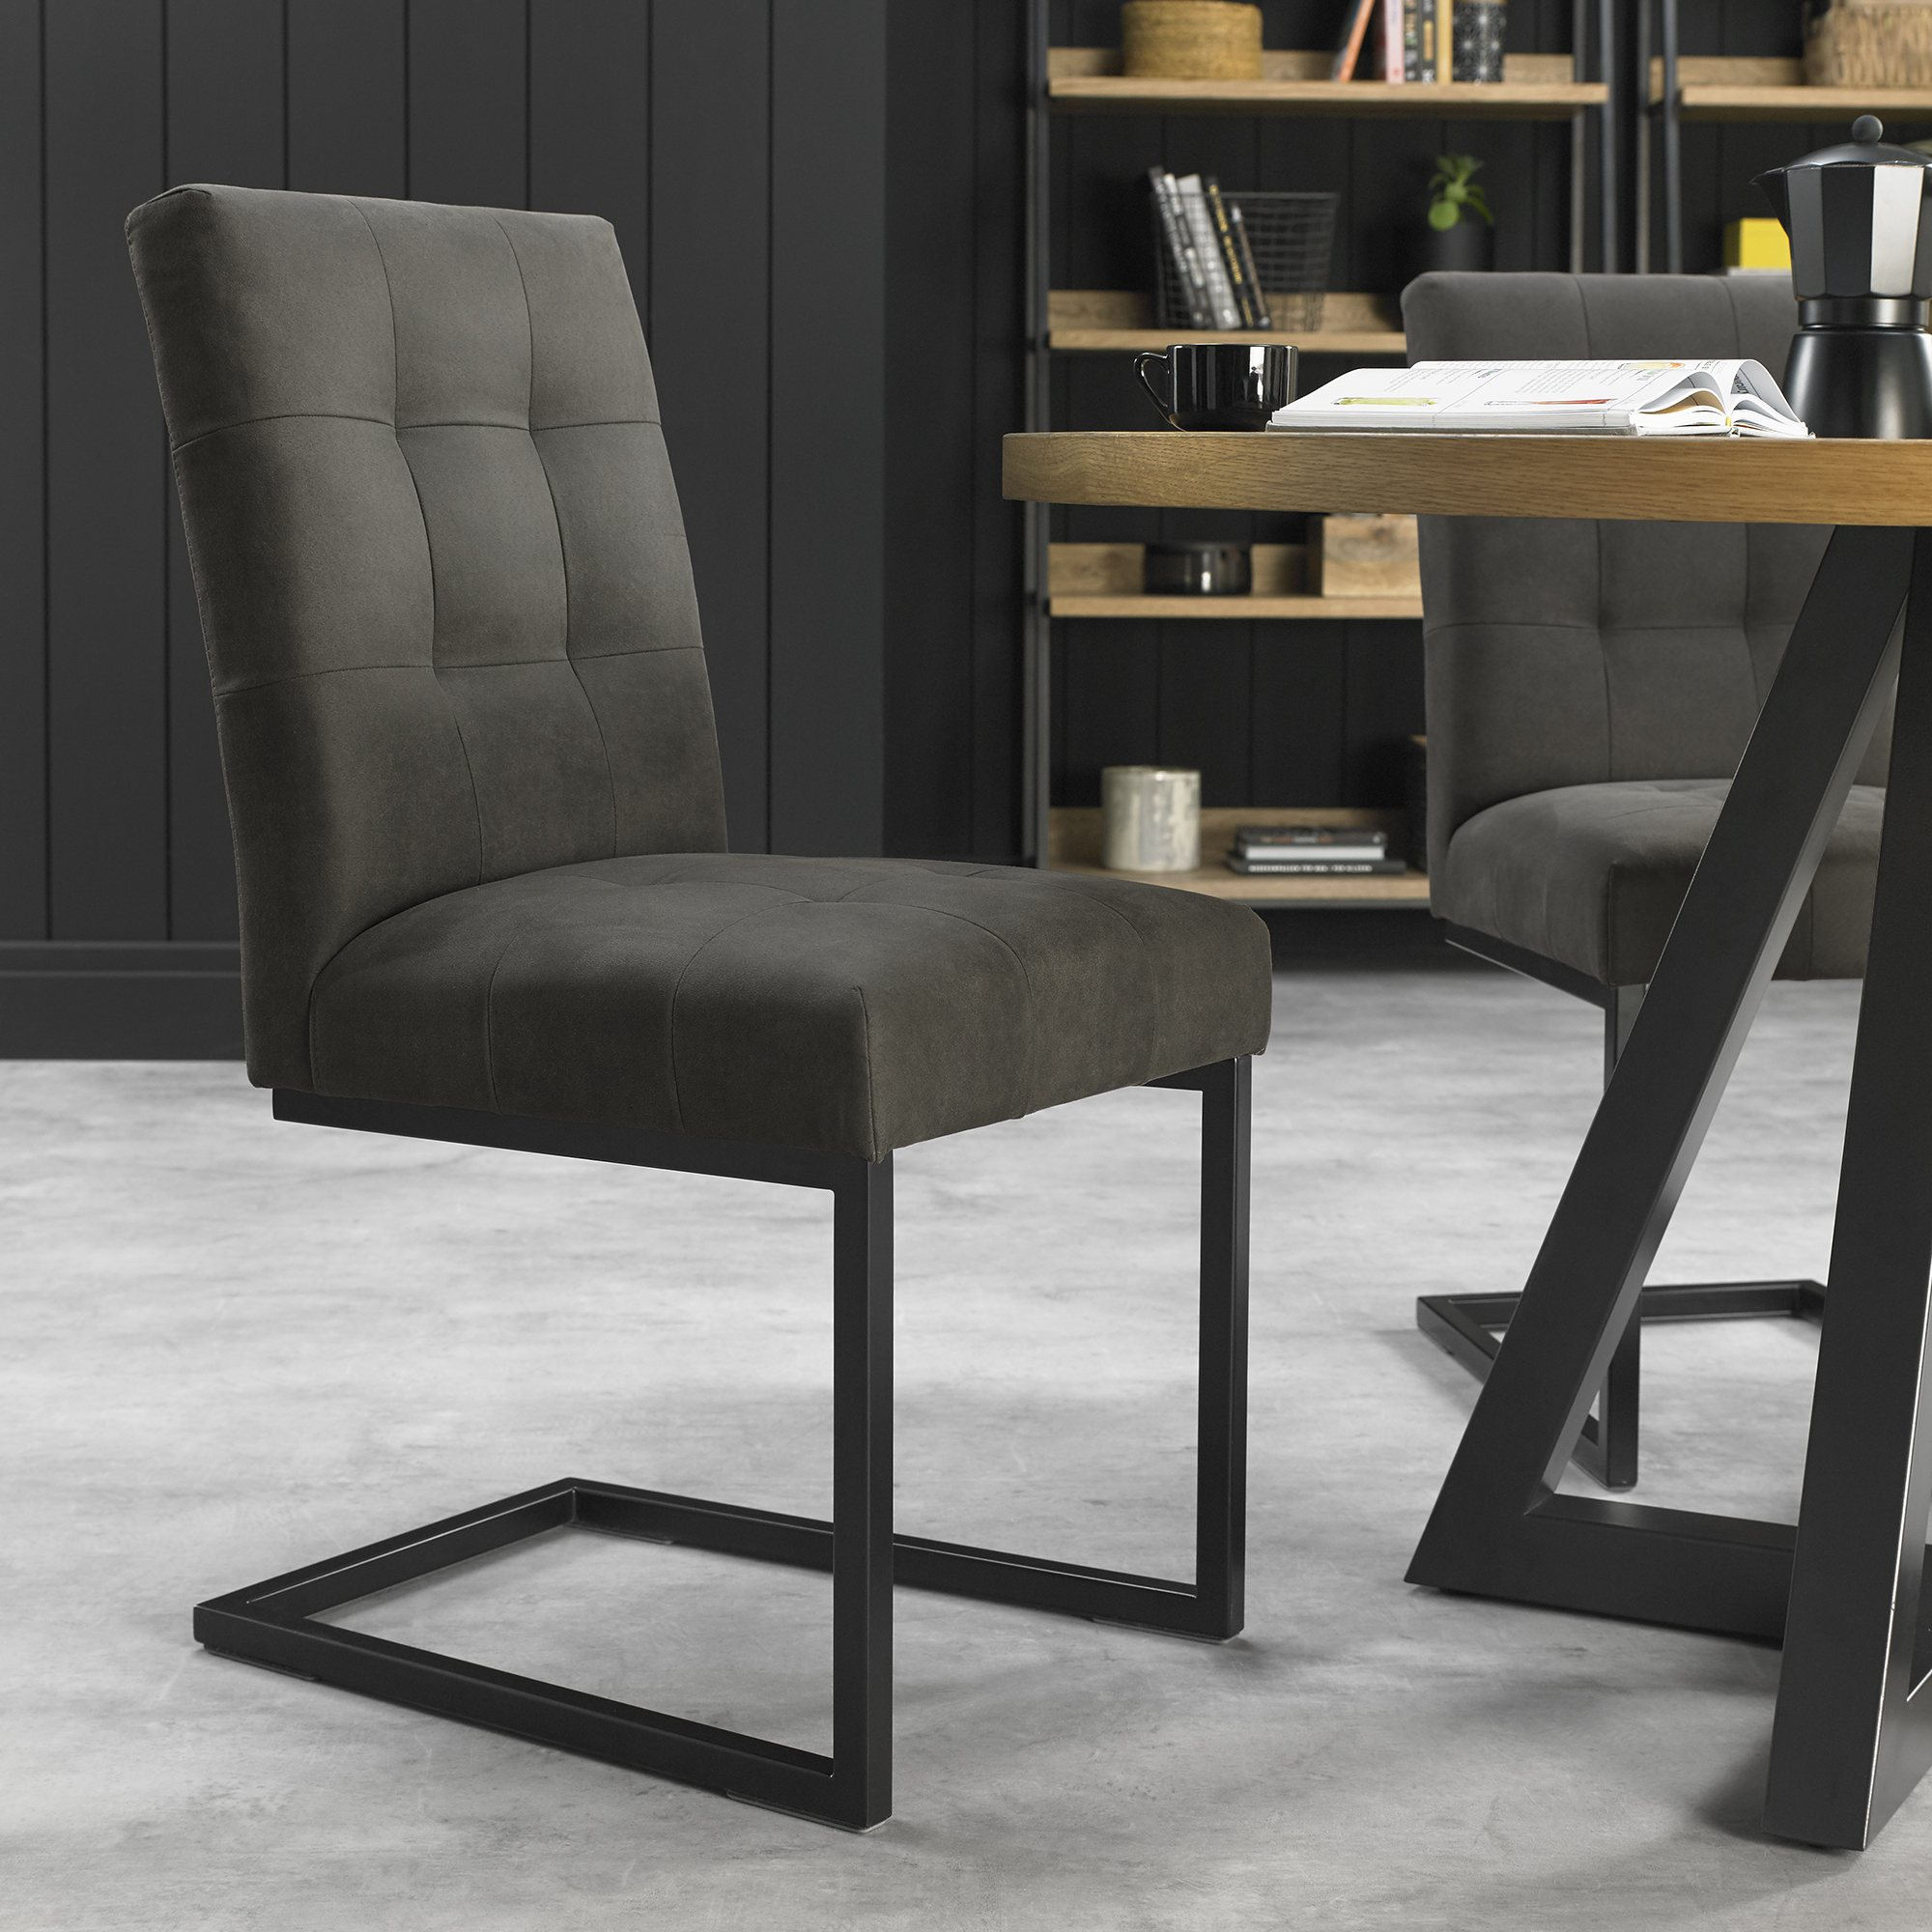 EASY GLIDE CANTER CHAIR IN DARK GREY